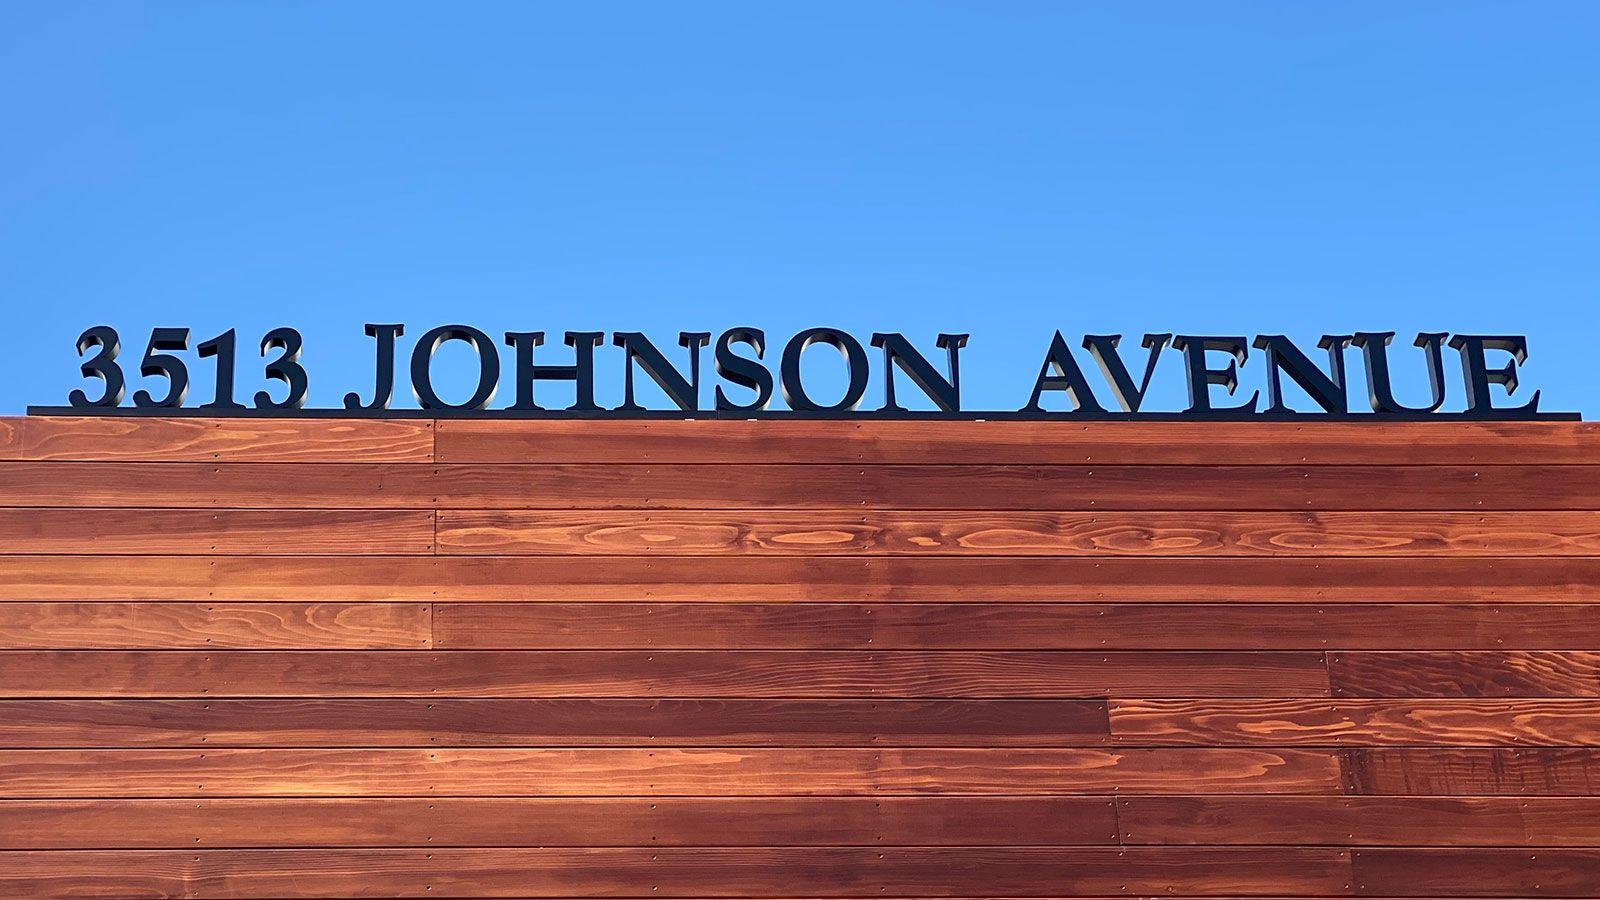 Johnson Avenue 3d sign letters and numbers in a large size made of acrylic for displaying the business address on the rooftop